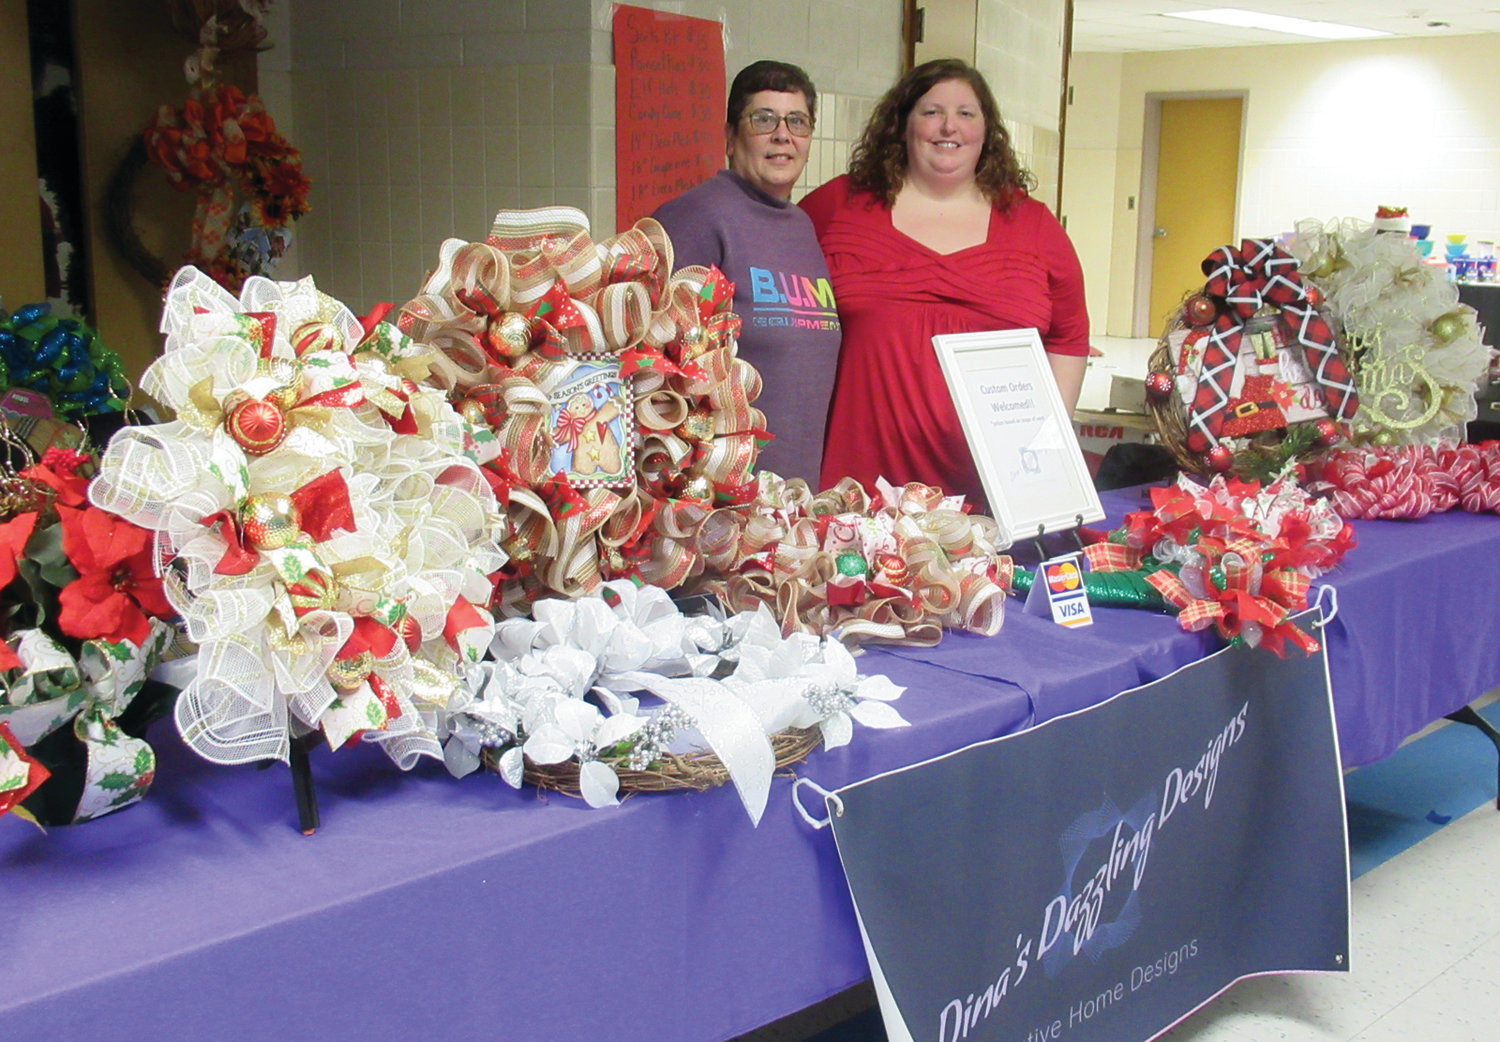 DINA'S DAZZLING DESIGNS: Dina and Kim Audette had quite the collection of specially made Christmas wreaths and decorations during Saturday's Holly Fair.